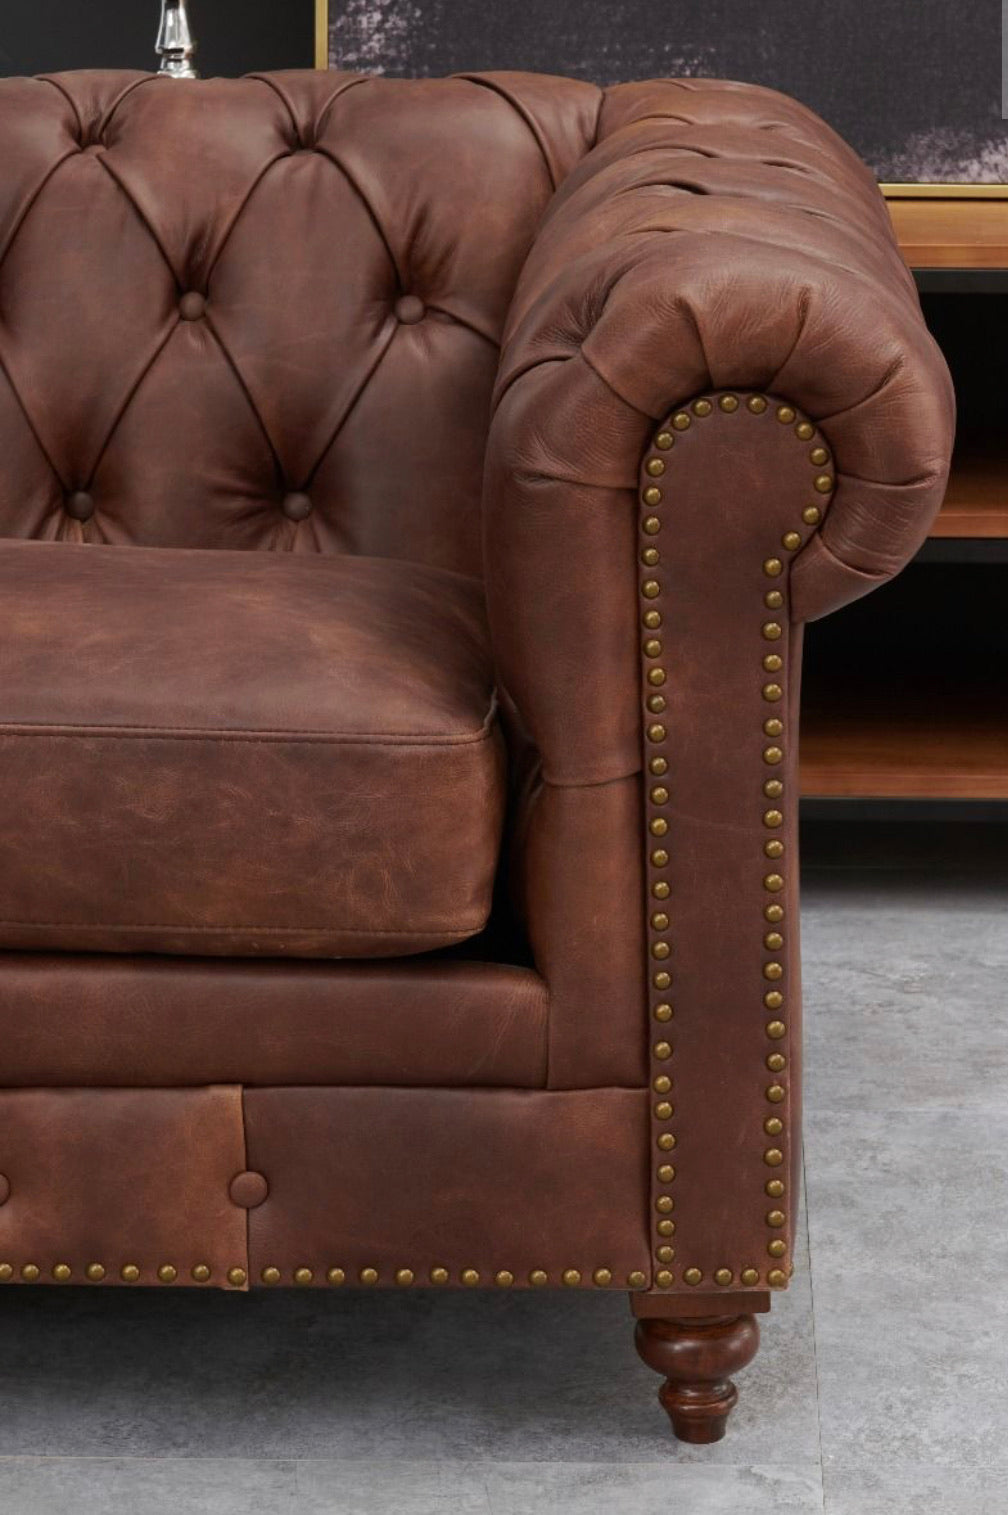 Chesterfield 2 Seater Sofa - Brown Leather